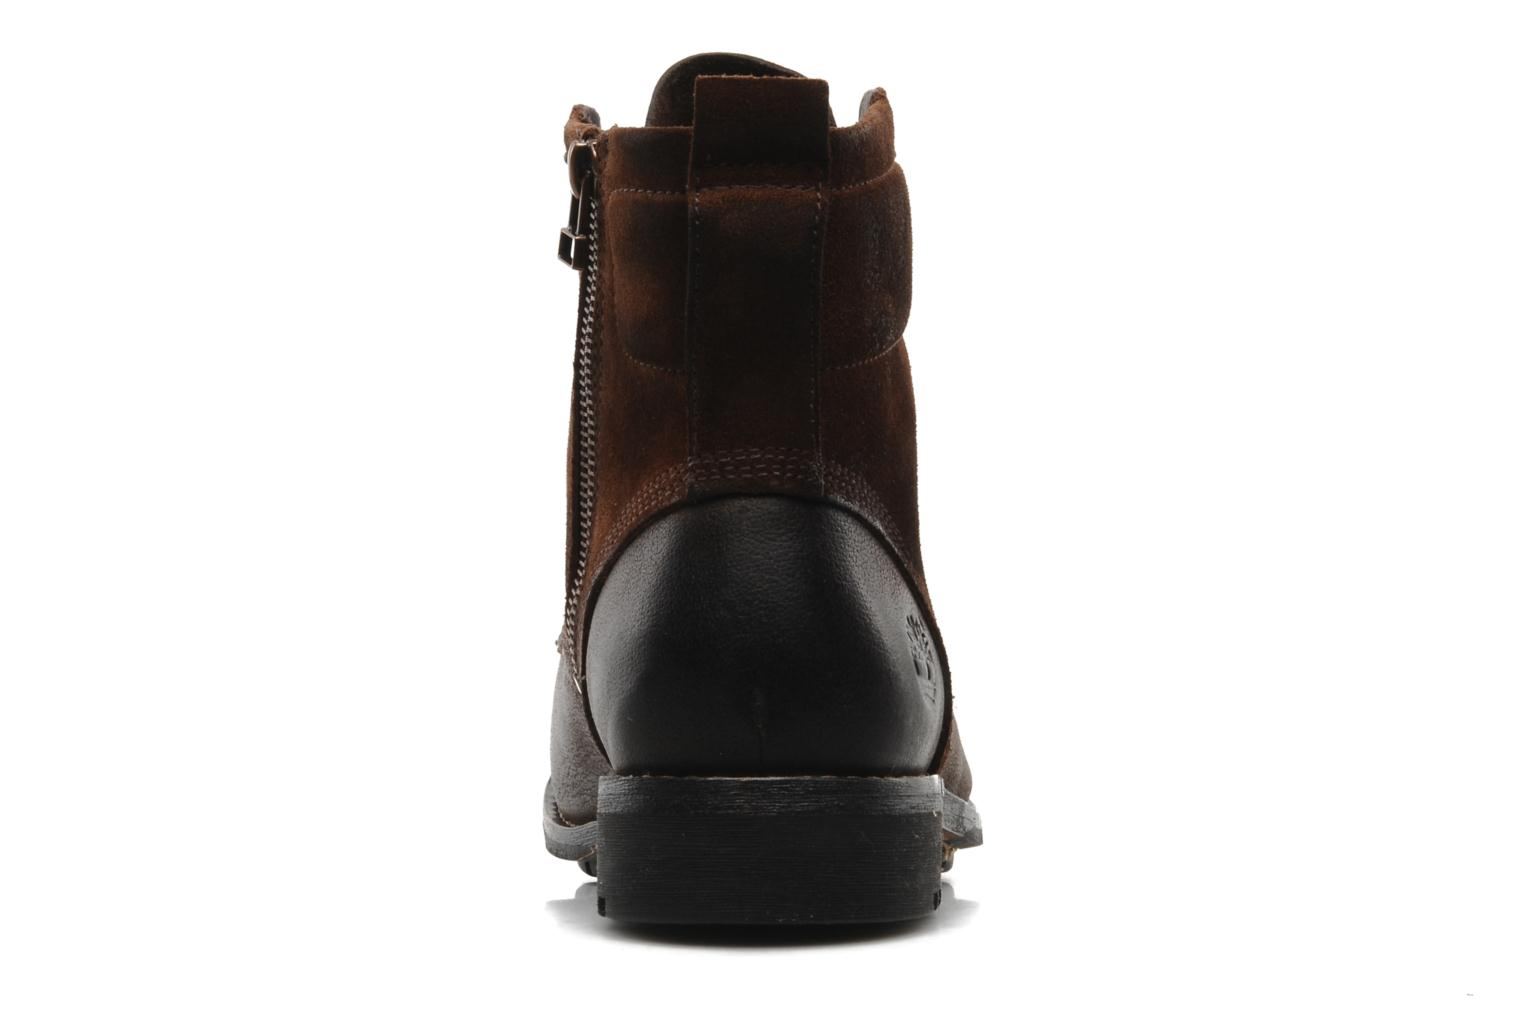 Timberland Earthkeepers A Centro Di 6 a7qjd9gTJ